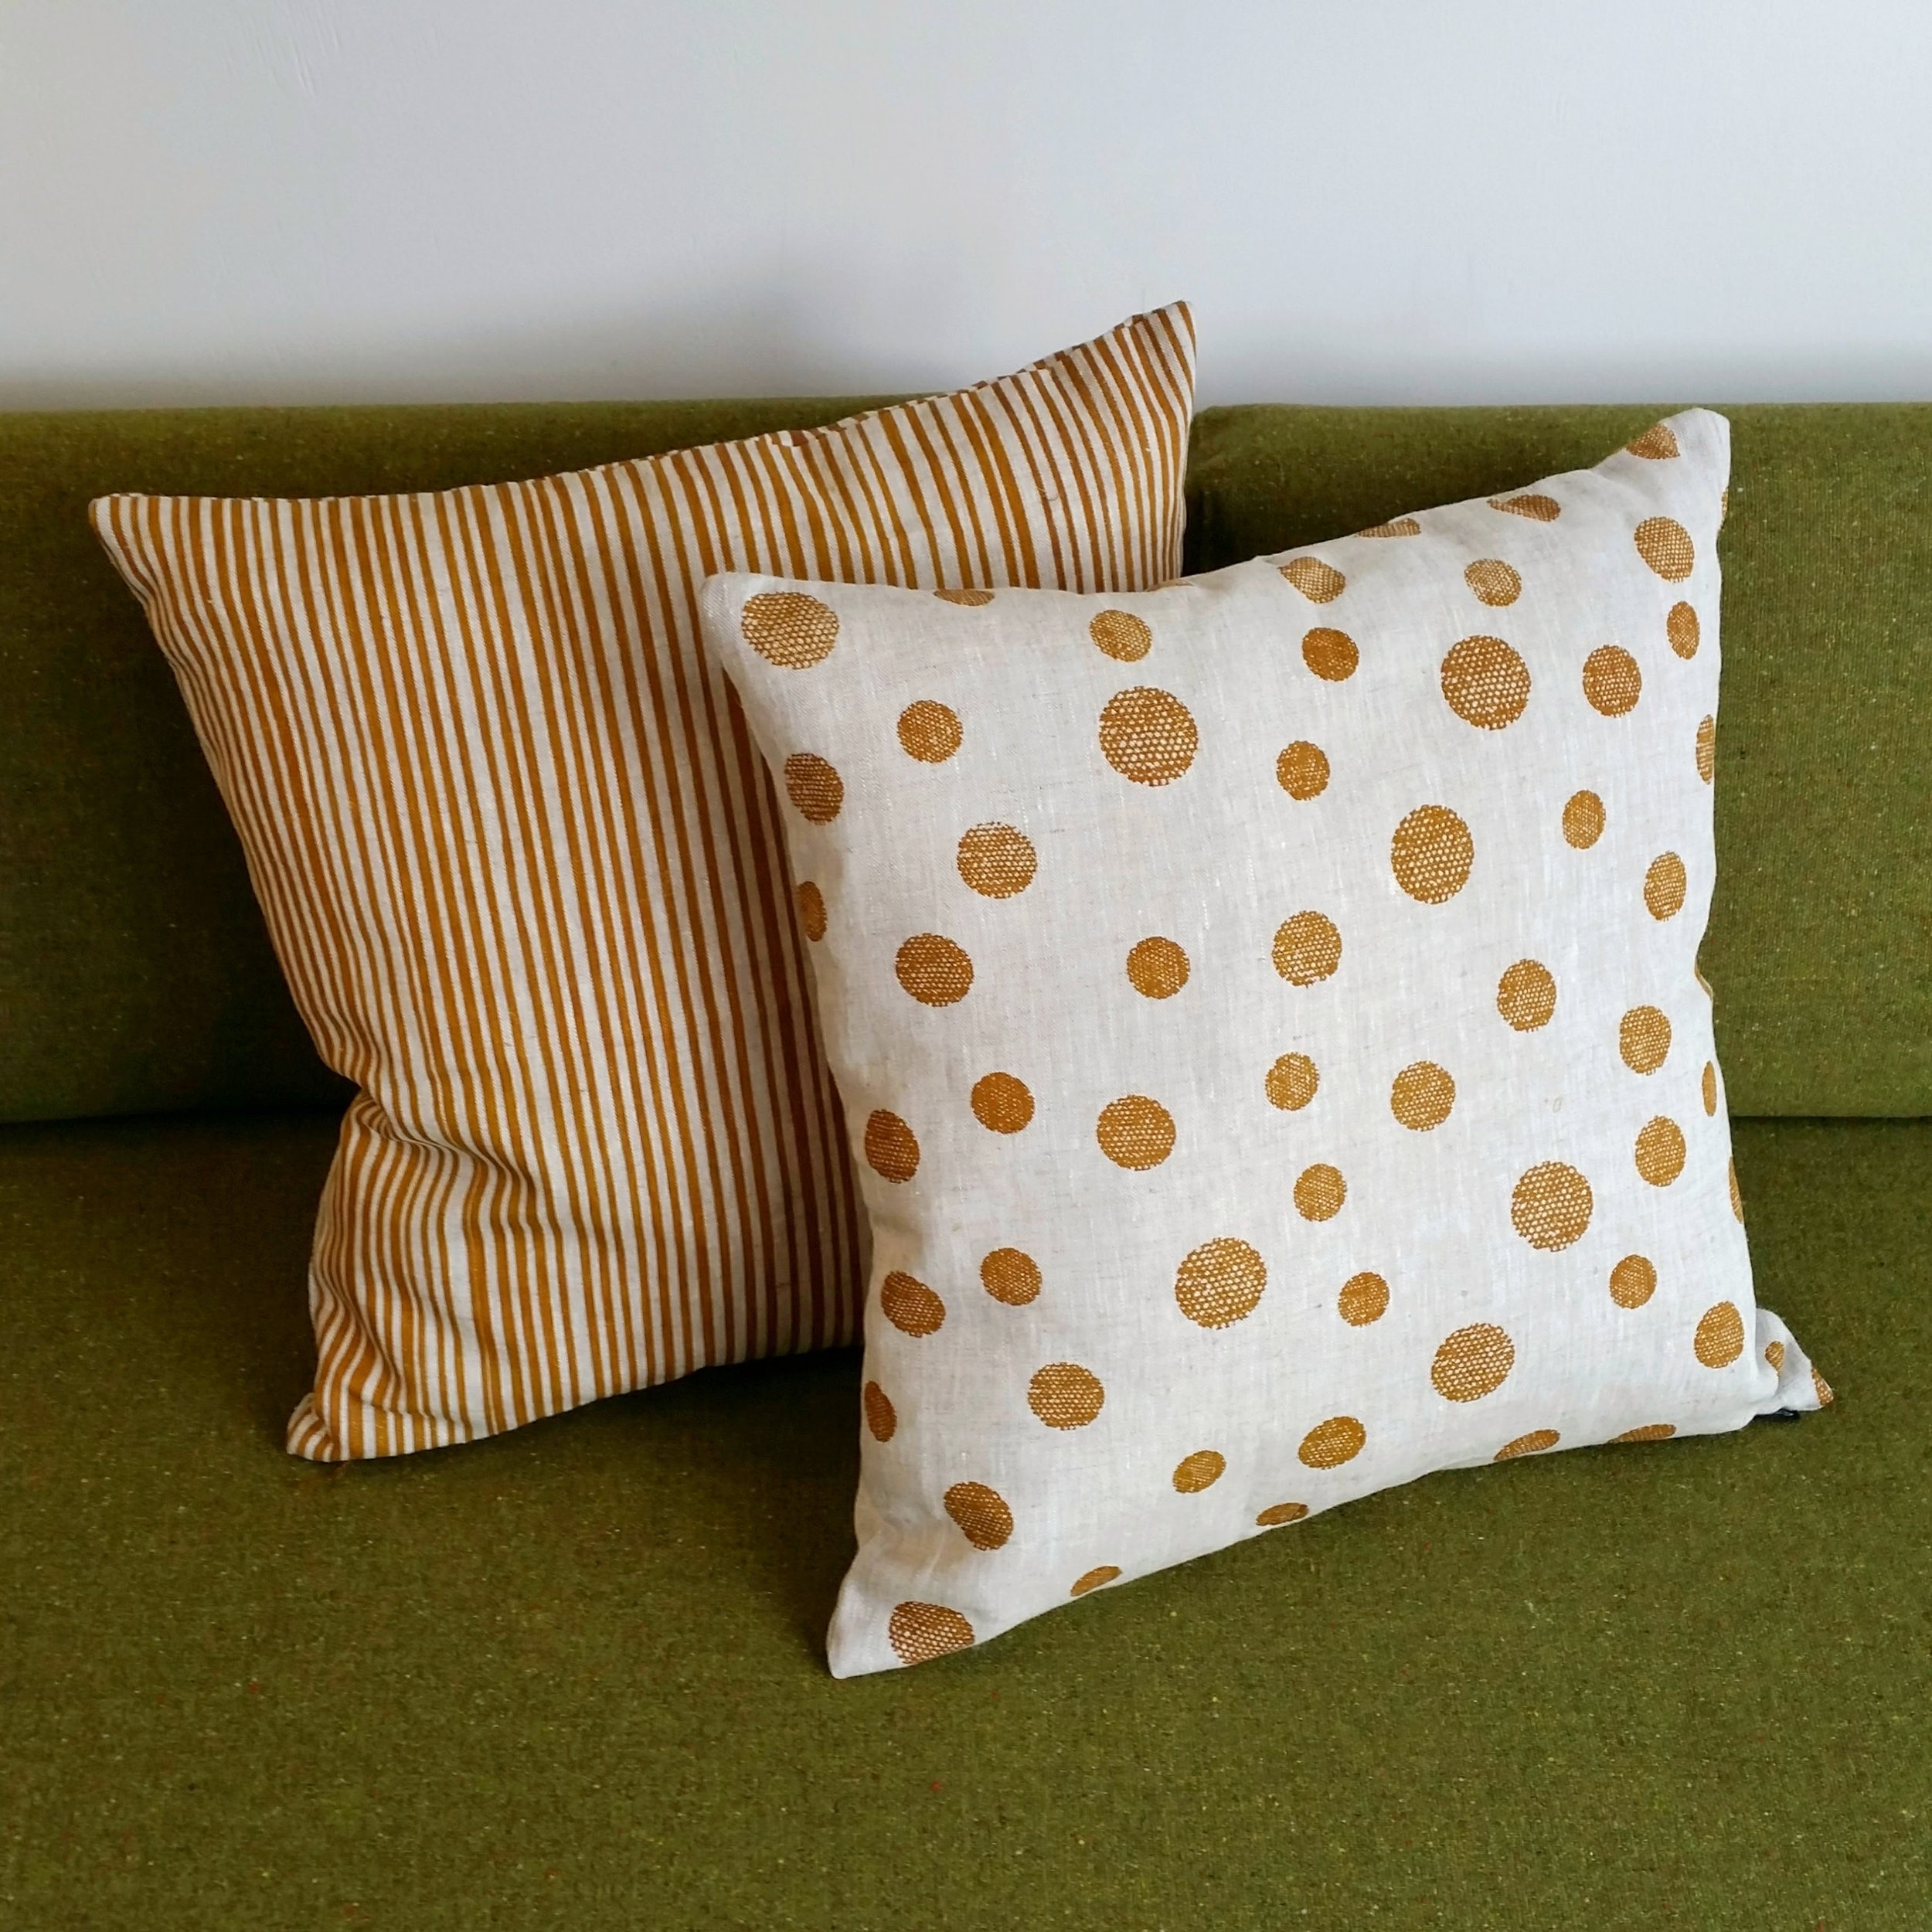 Smitten Design - Hand screen-printed linen cushion covers